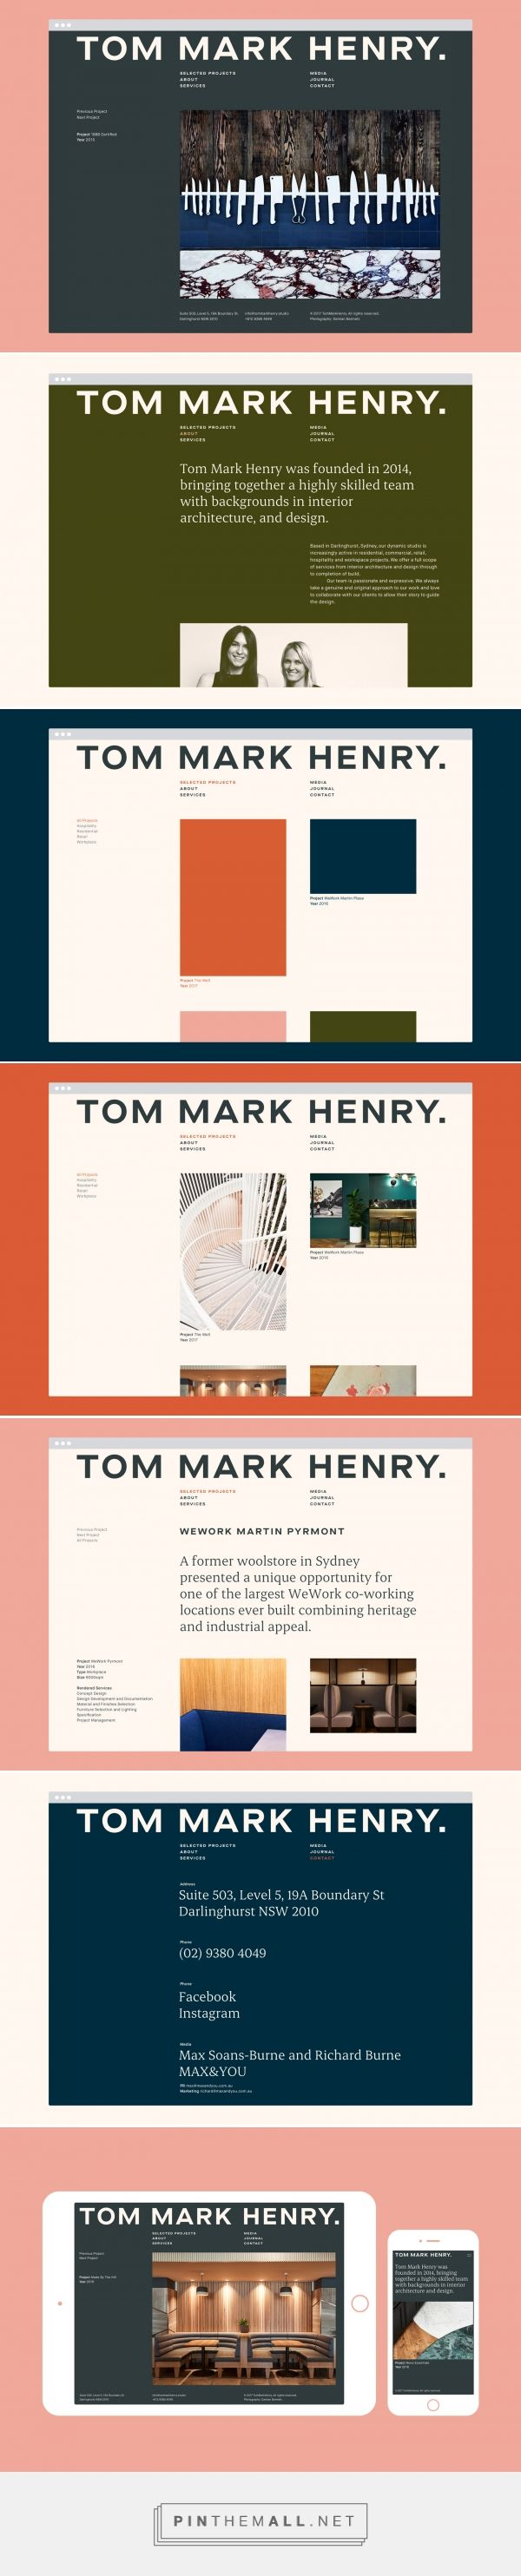 6d77d4d8098e4 Pin by syd s on new projects | Web design inspiration, Web Design, Graphic  Design